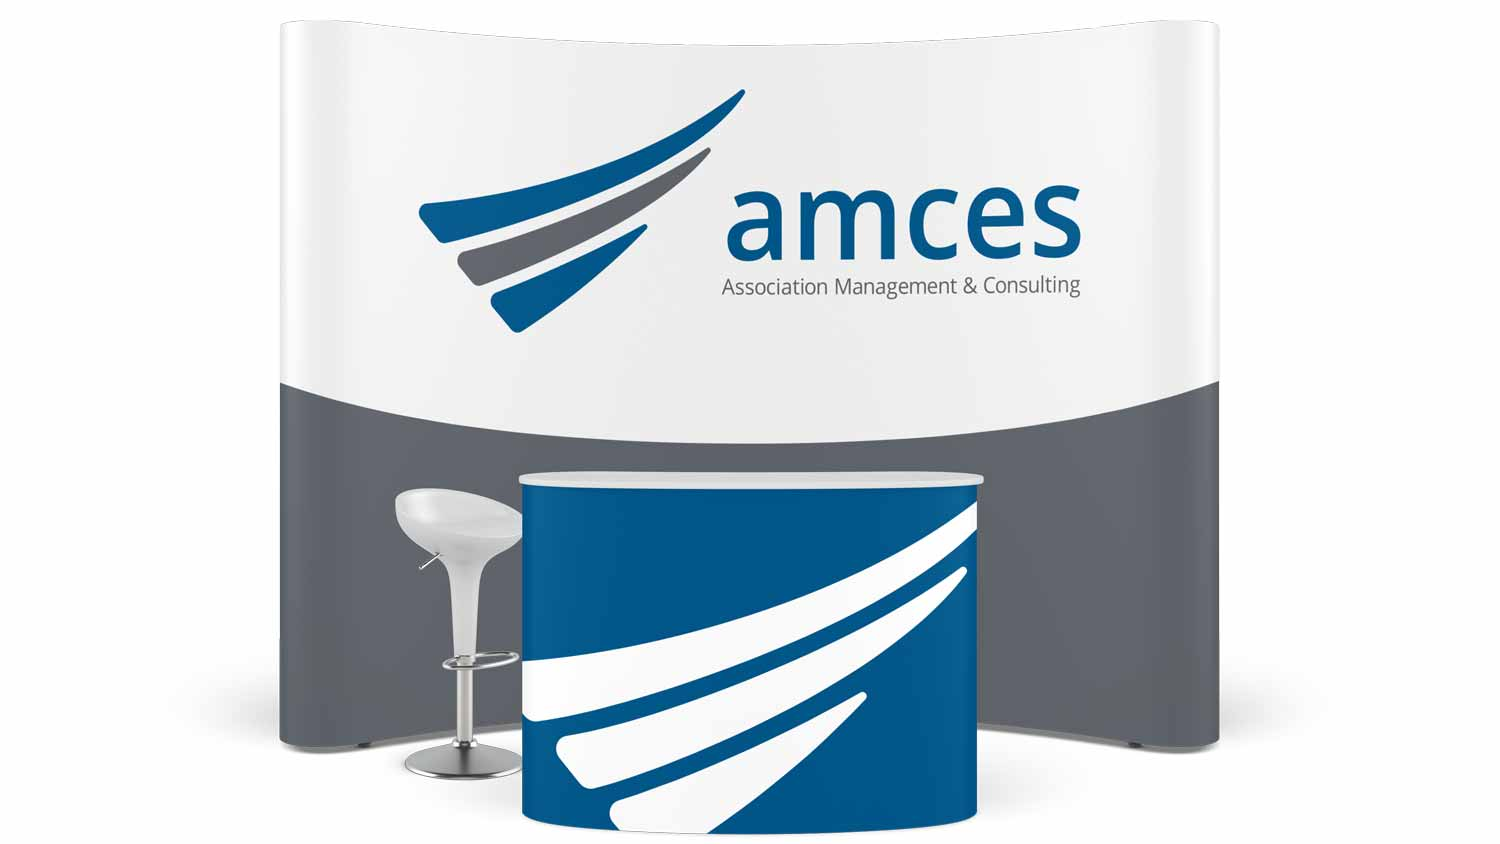 A conference booth with the AMCES branding.